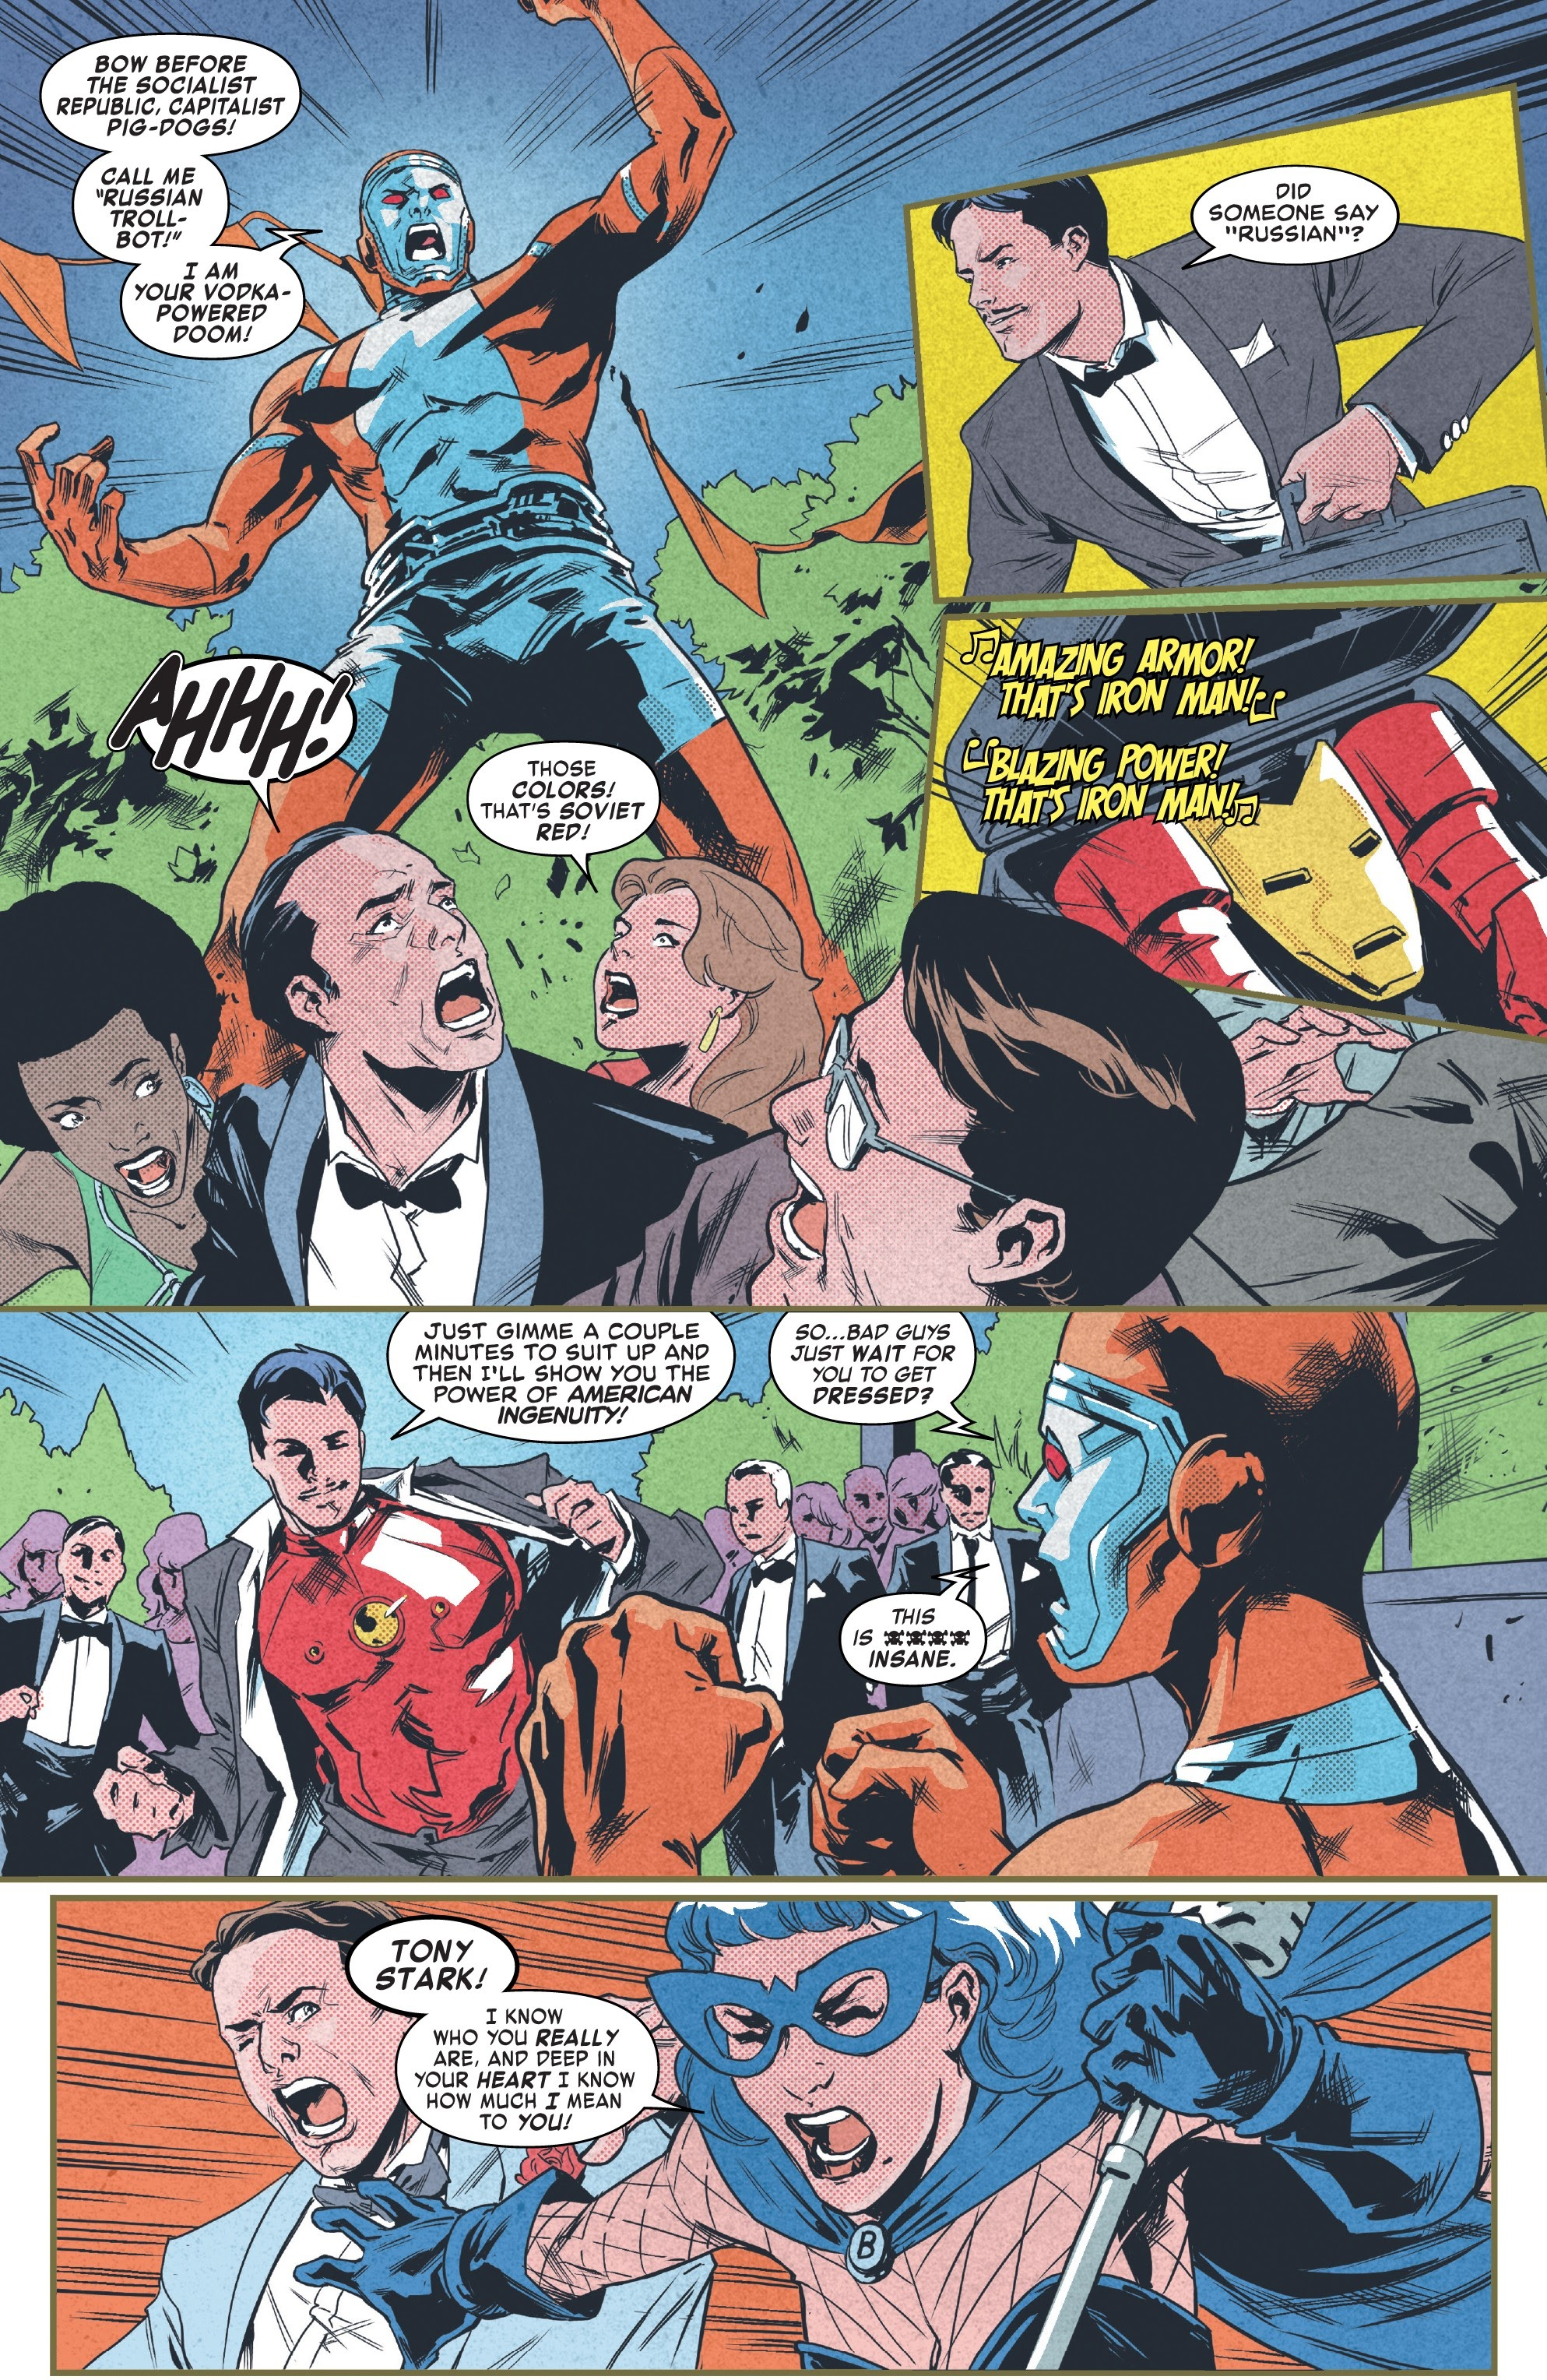 Read online Tony Stark: Iron Man comic -  Issue #9 - 16